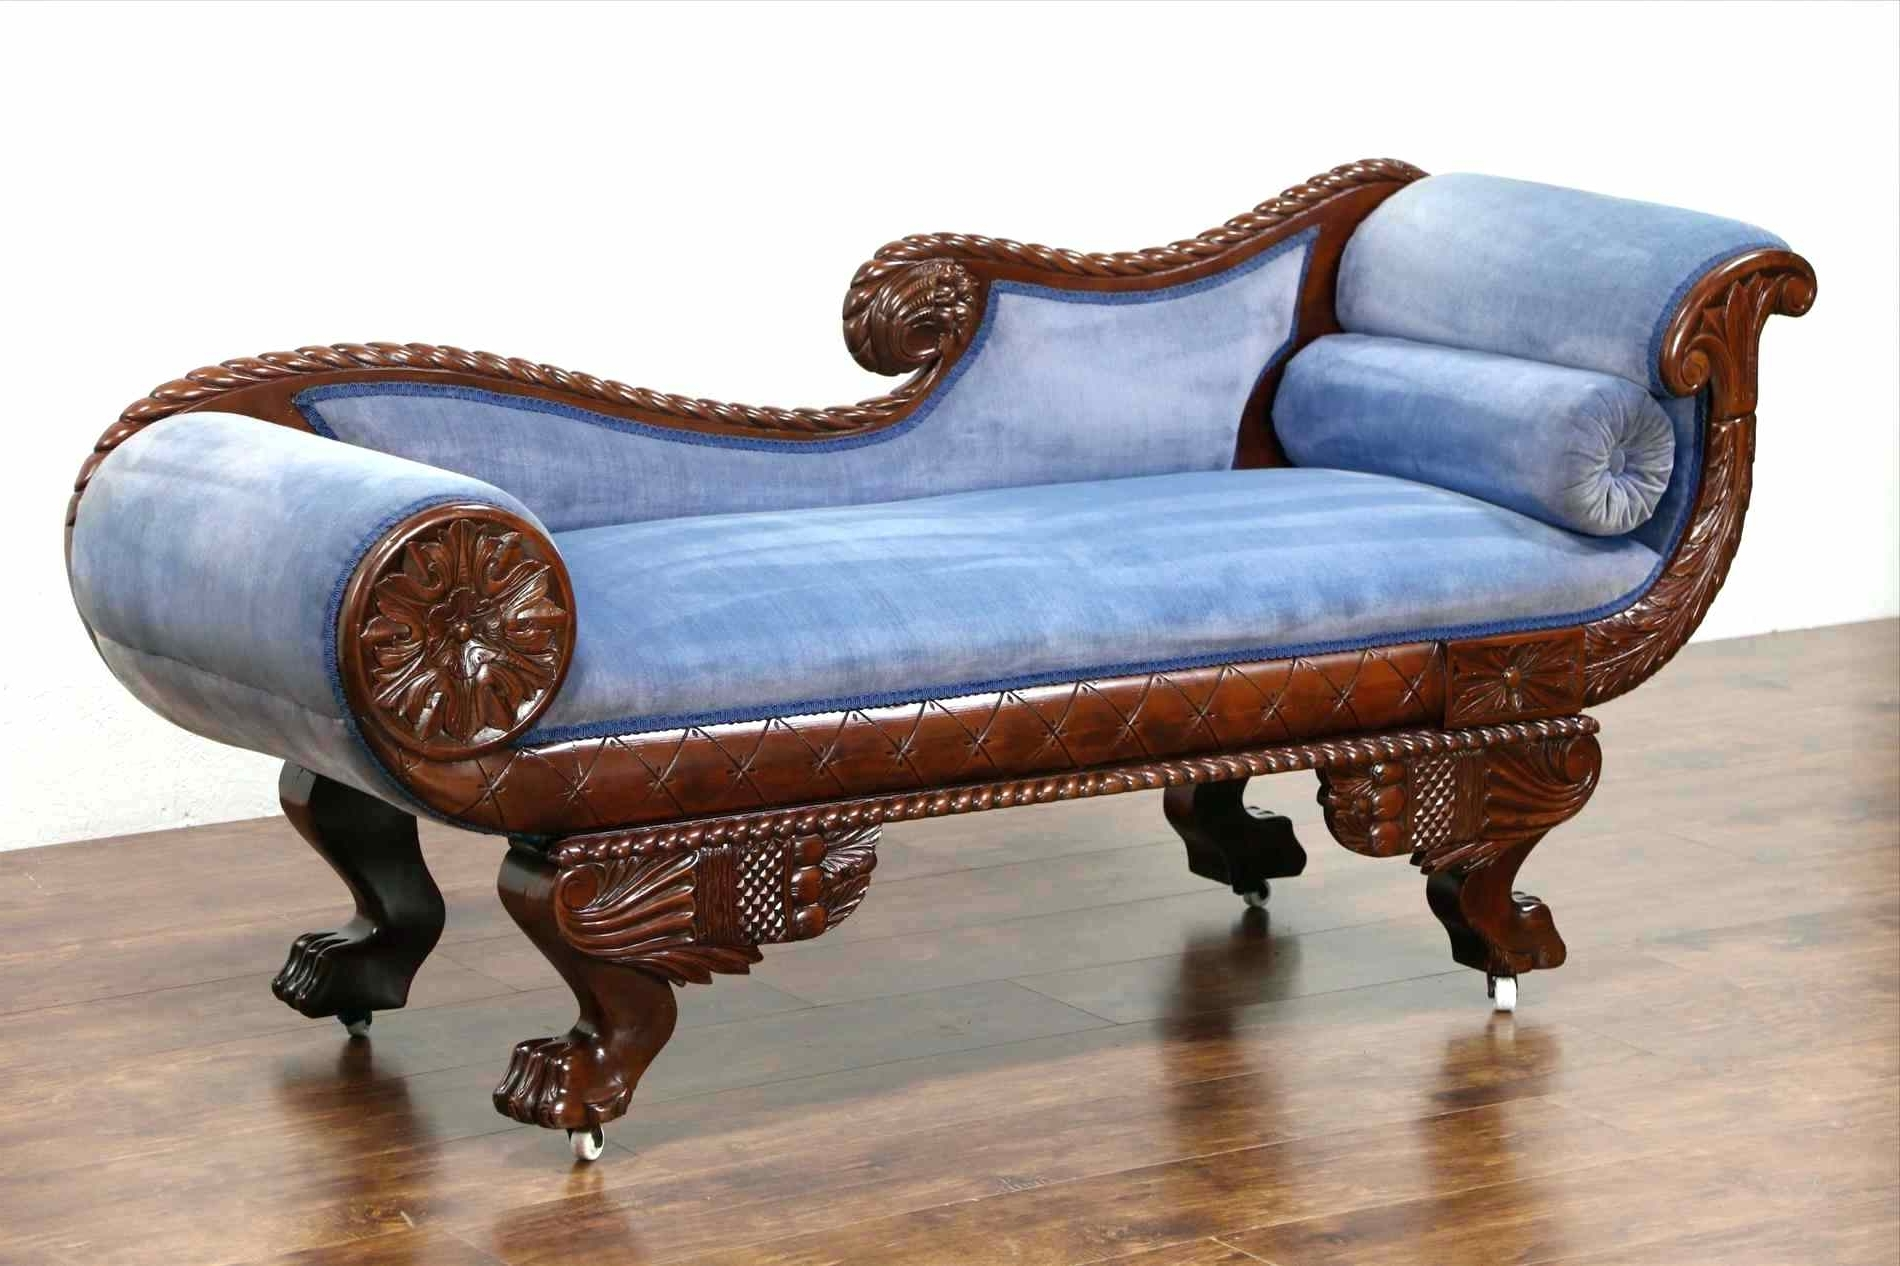 Antique Chaise Lounge Chairs With Most Popular Antique Chaise Lounge Chair • Lounge Chairs Ideas (View 8 of 15)